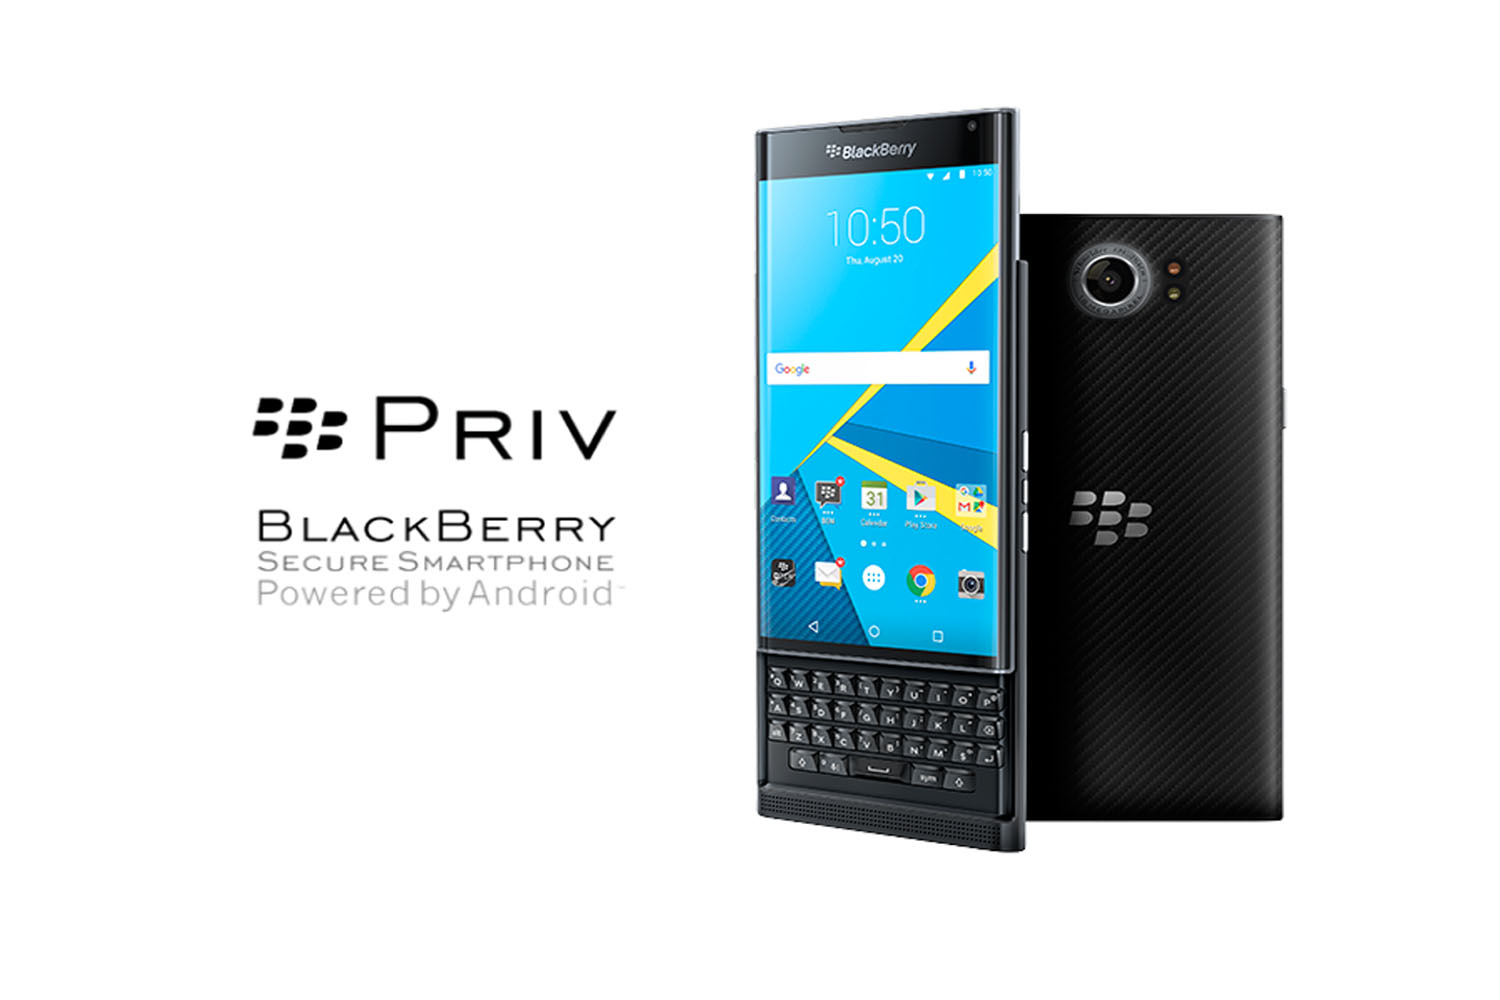 7 Things About The New Priv Android Phone